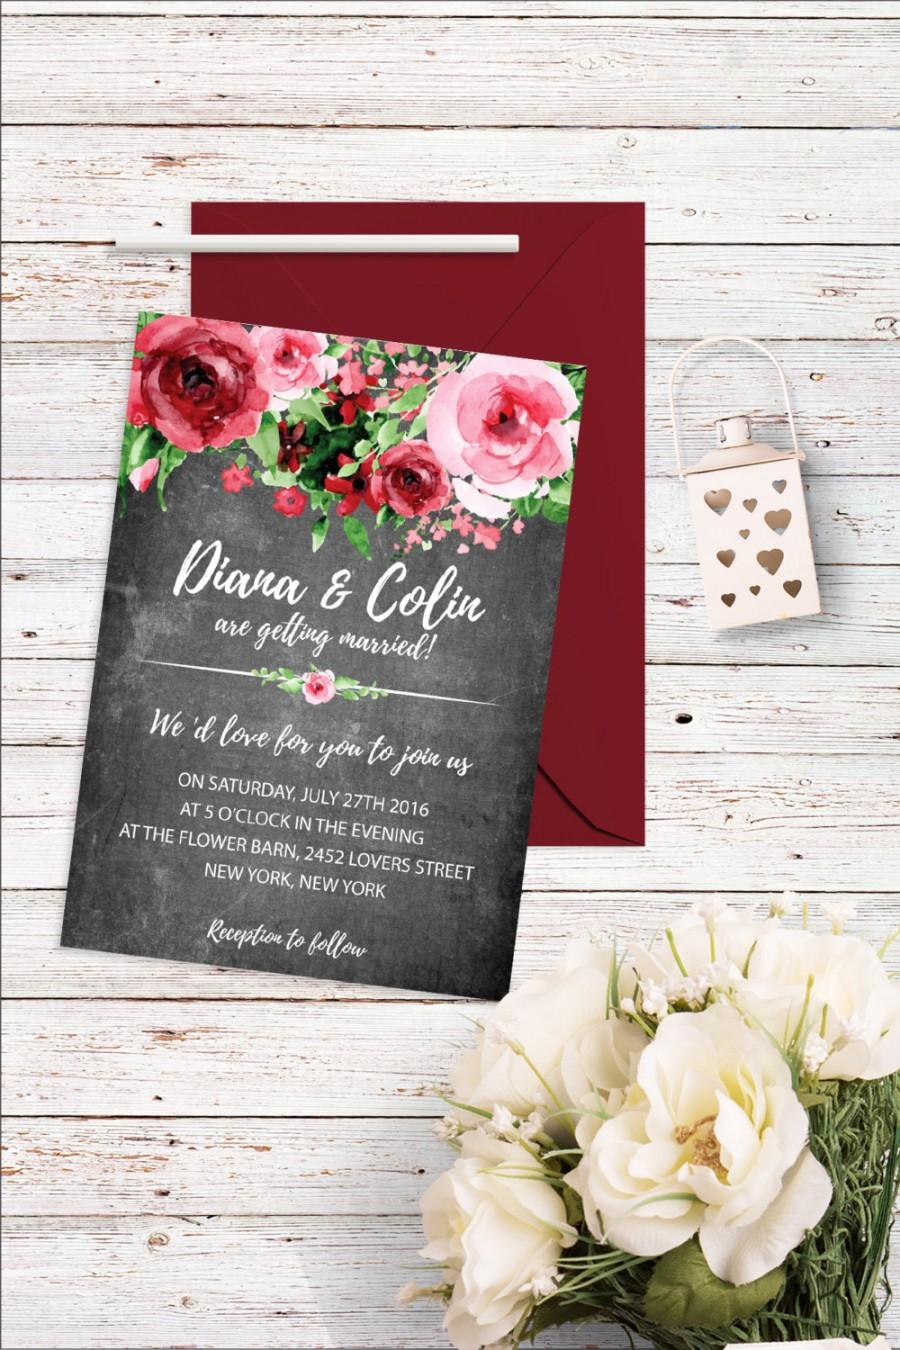 Mariage - Floral Chalkboard Wedding Invitation Flower Wedding Invitation Rustic Wedding Invitation Boho Chic Wedding Invitation Digital Wedding Invite